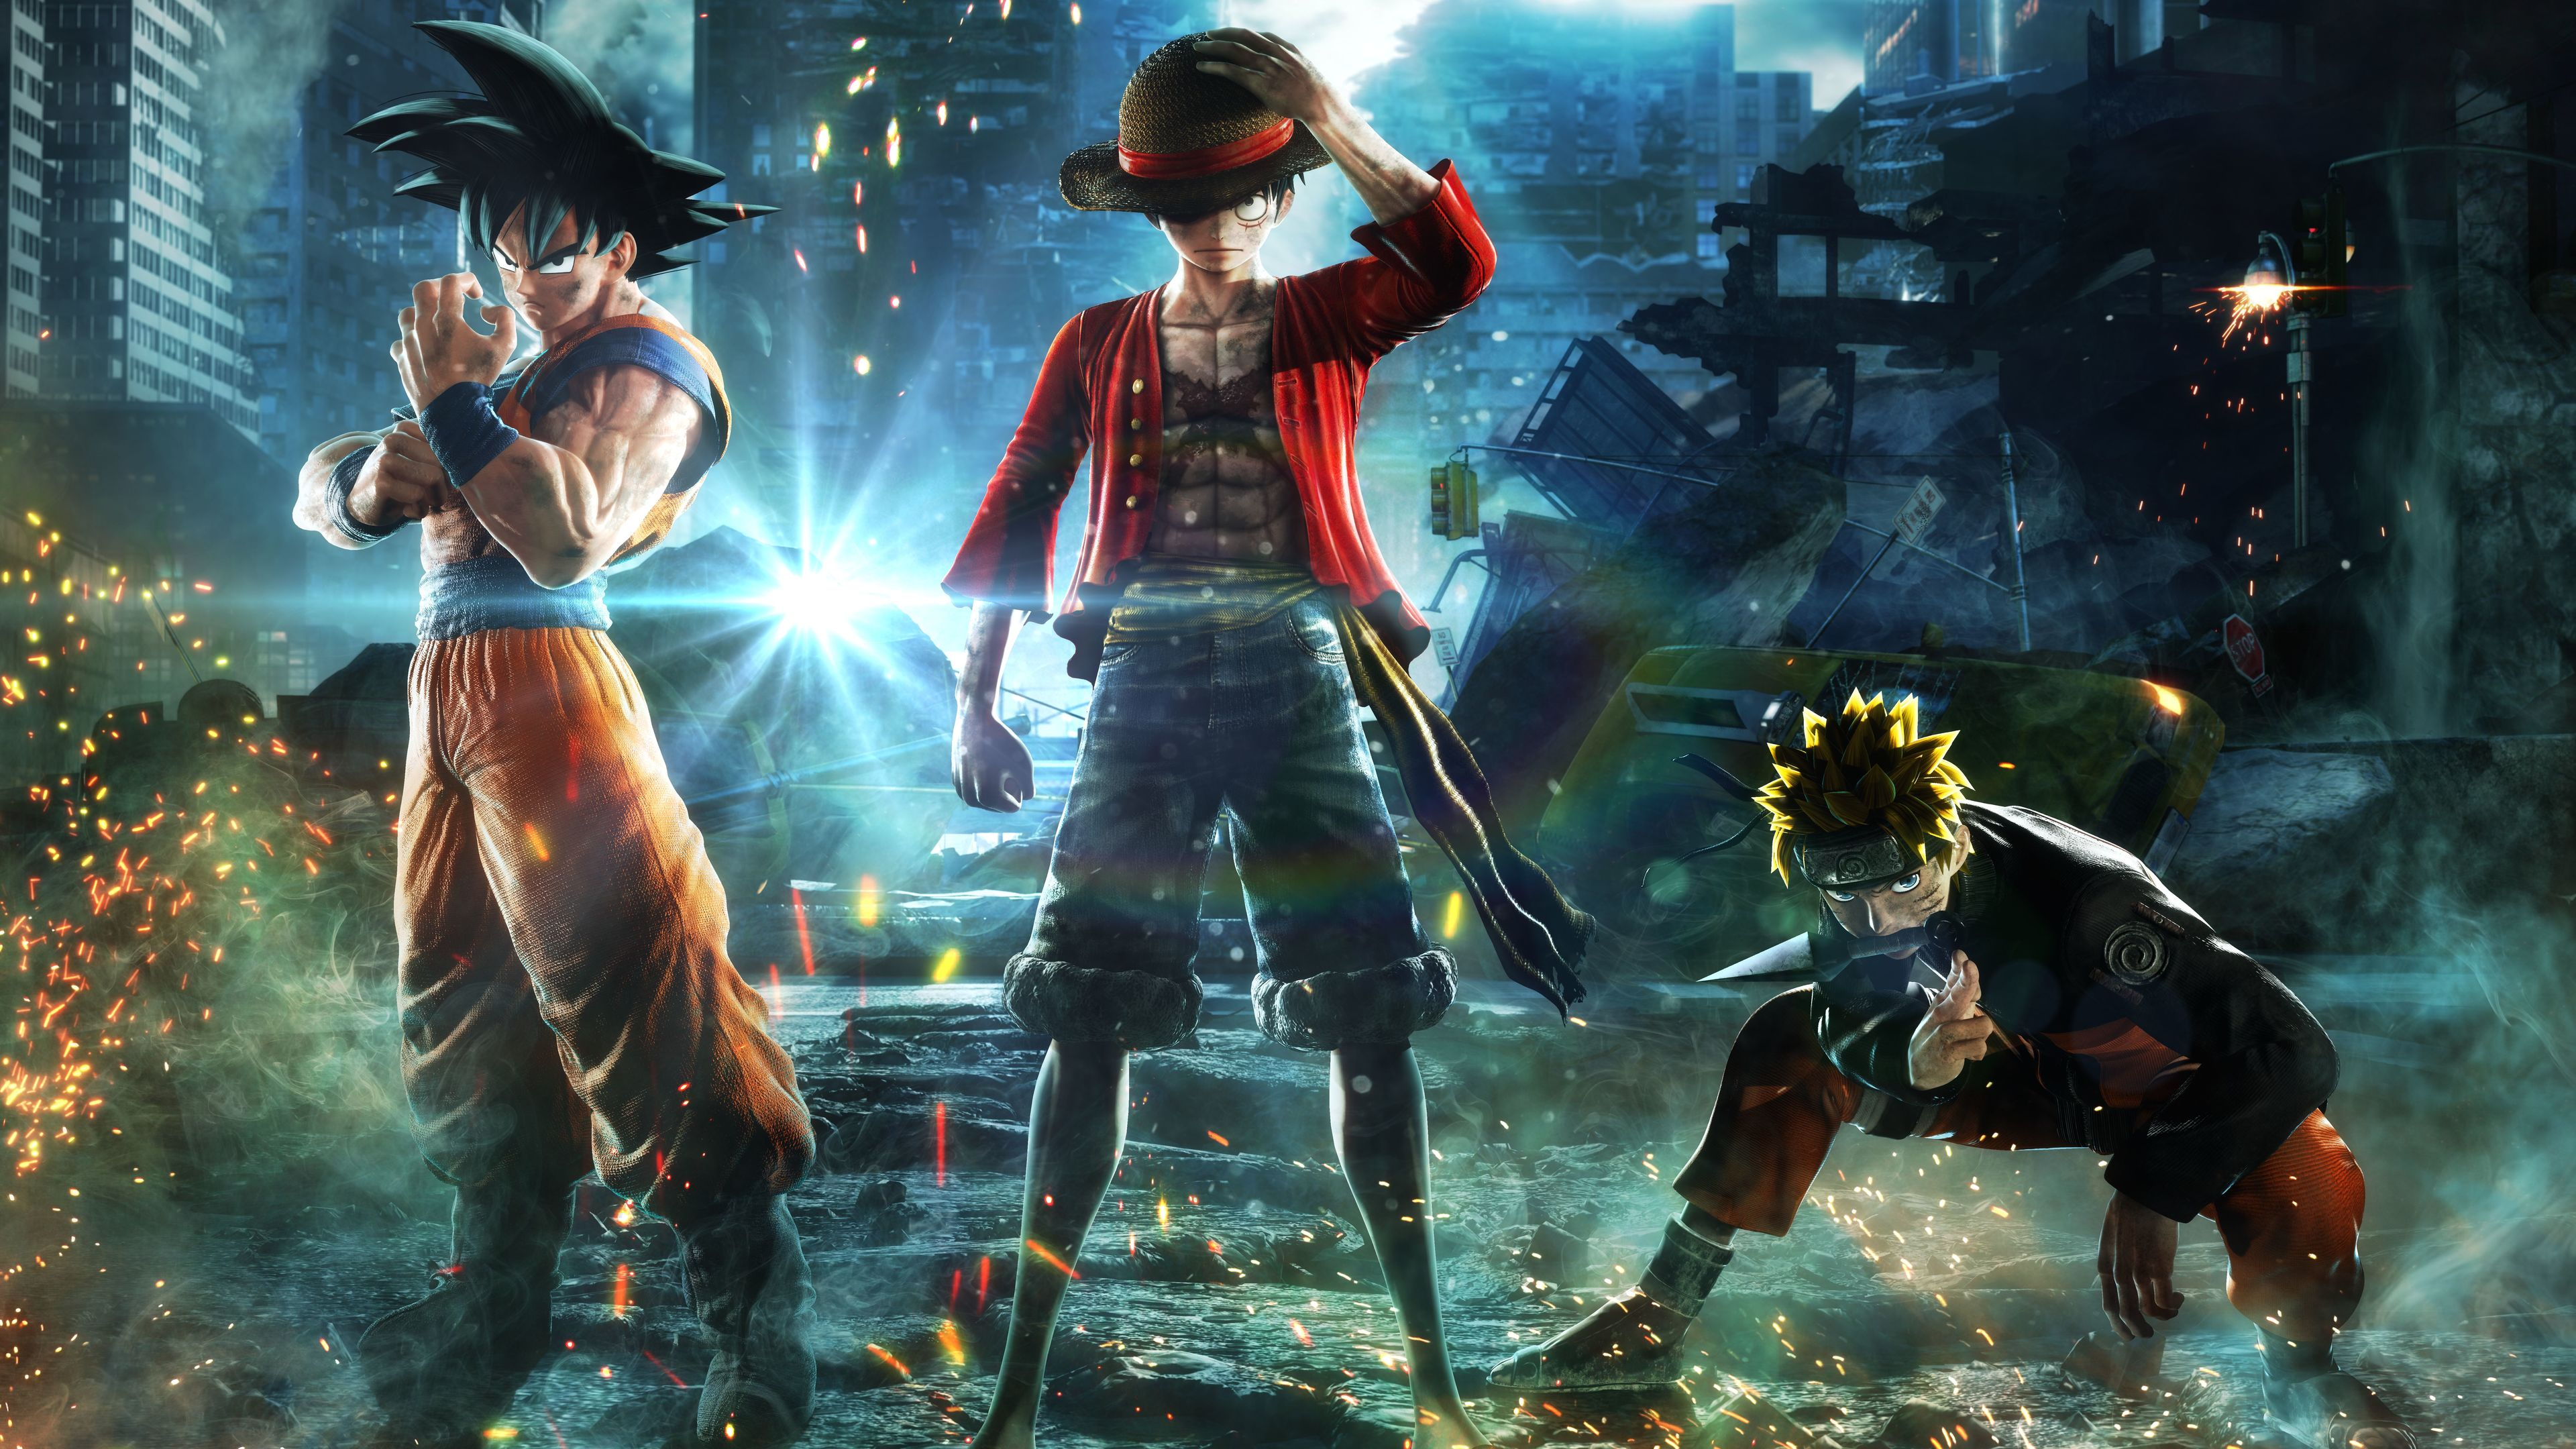 goku monkey d luffy naruto jump force 8k 1537690178 - Goku Monkey D Luffy Naruto Jump Force 8k - naruto wallpapers, monkey d luffy wallpapers, jump force wallpapers, hd-wallpapers, goku wallpapers, games wallpapers, 8k wallpapers, 5k wallpapers, 4k-wallpapers